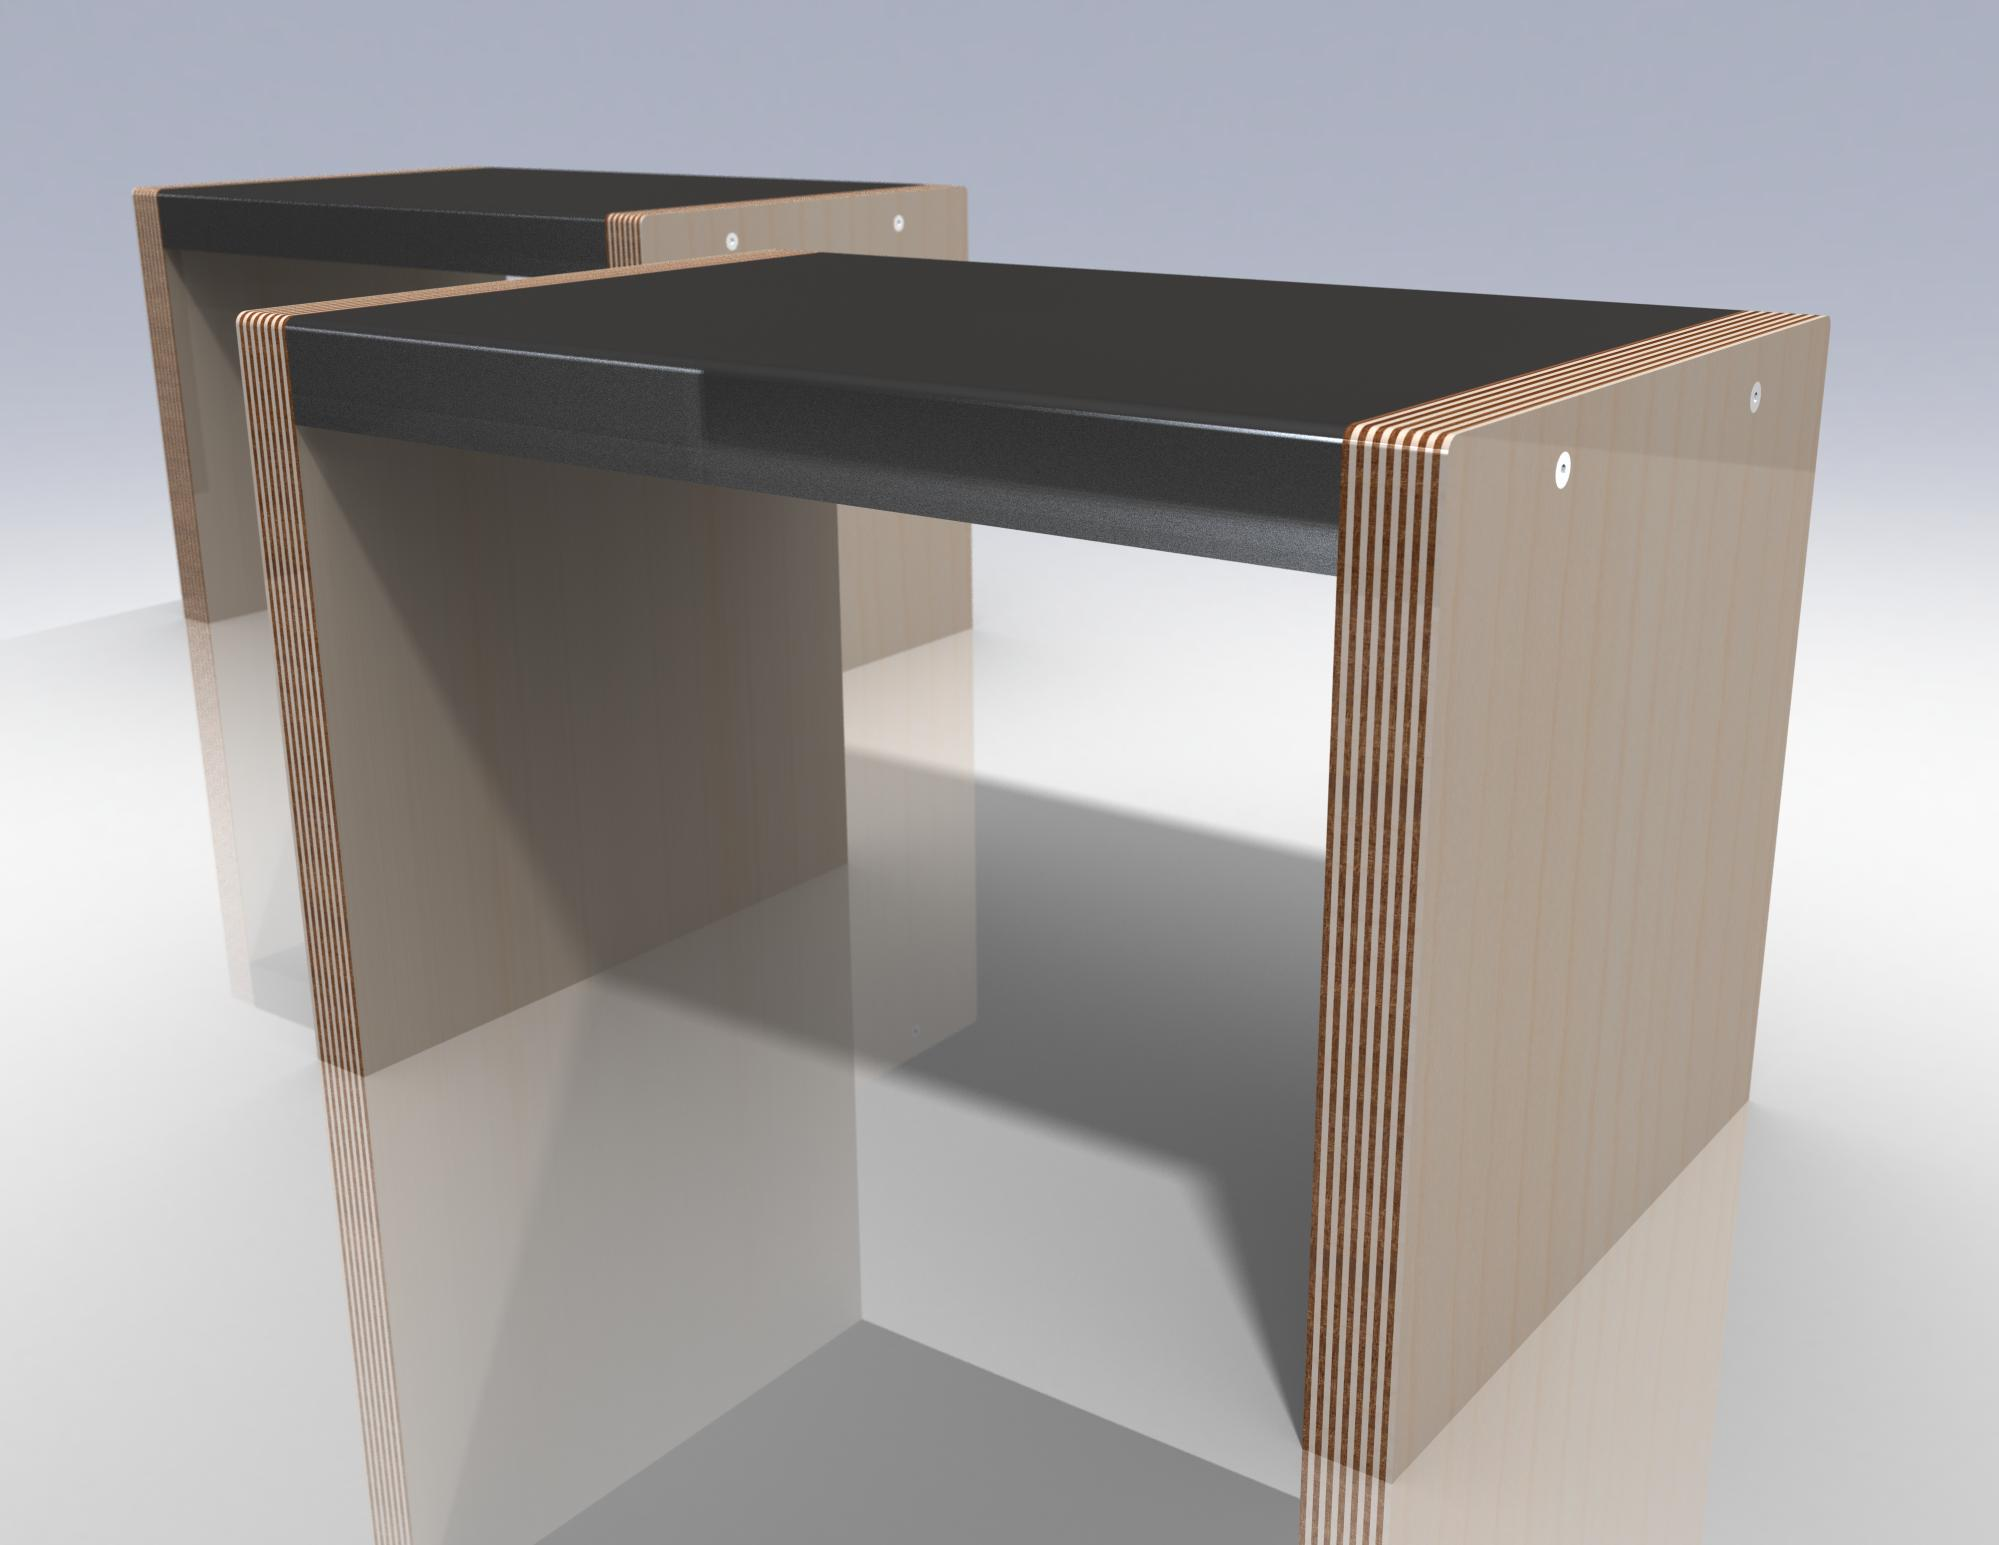 2 night stand iso rendering